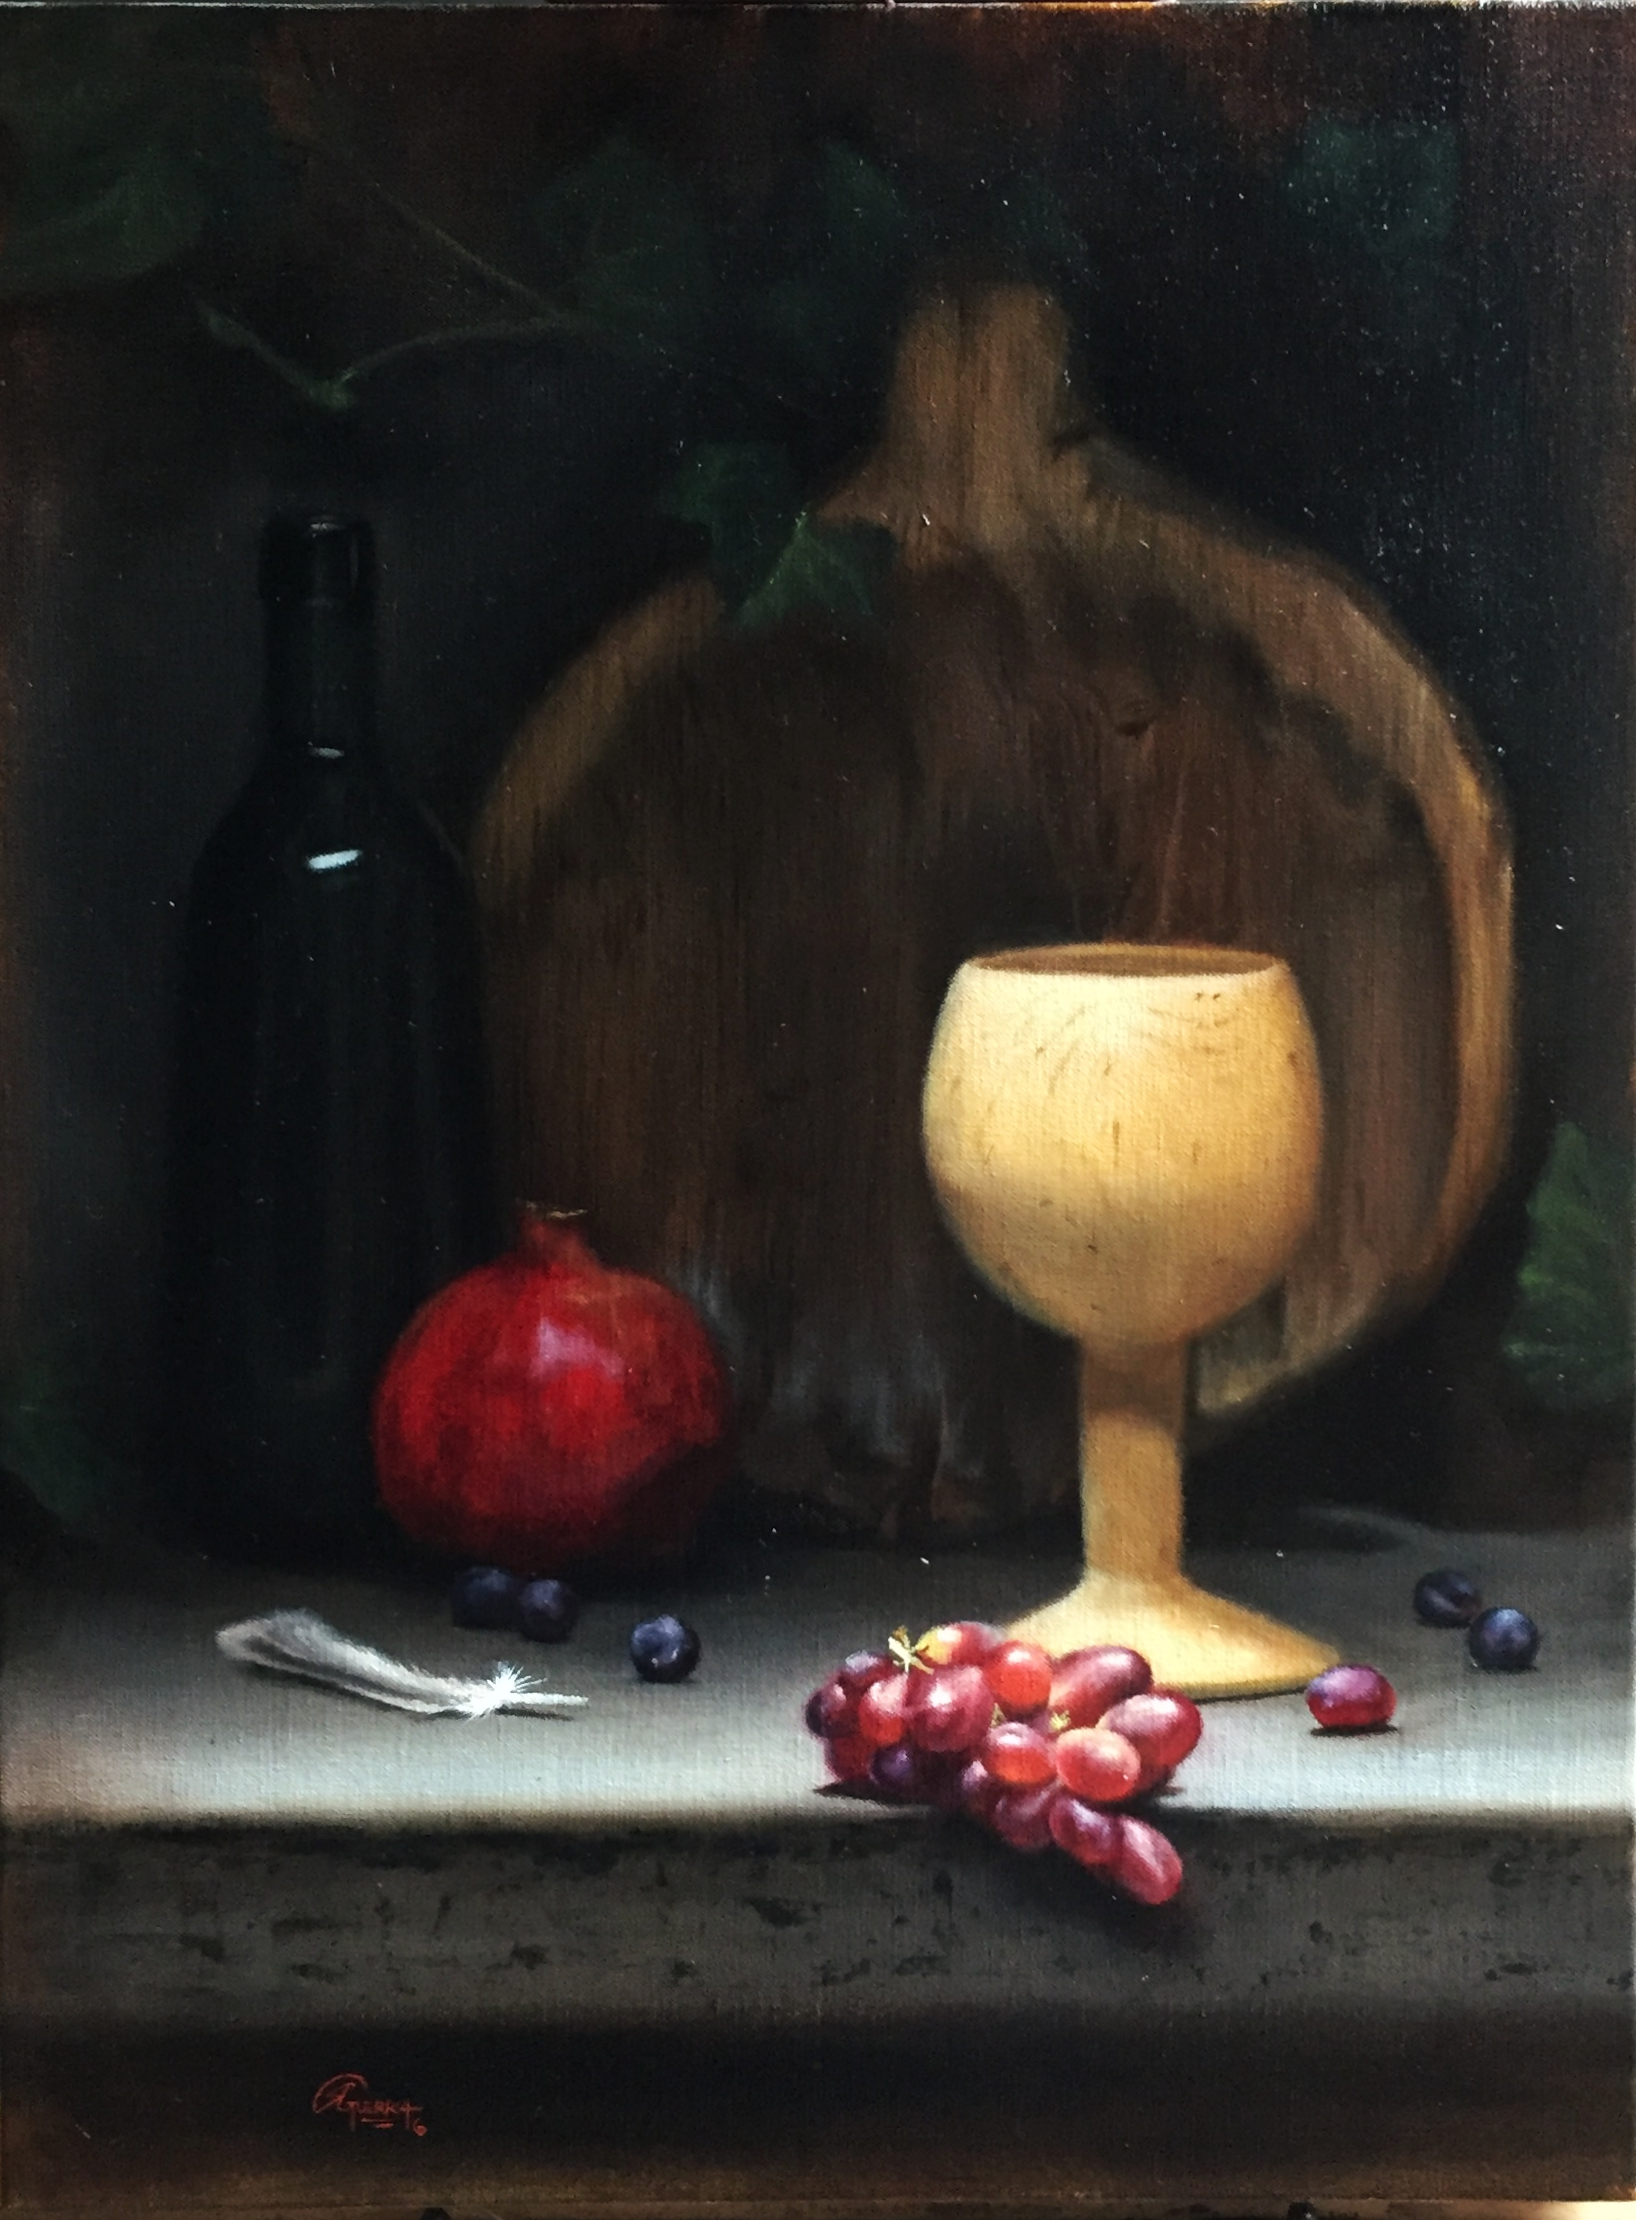 Pomegranate and Red Grapes, Rafael Guerra Painting